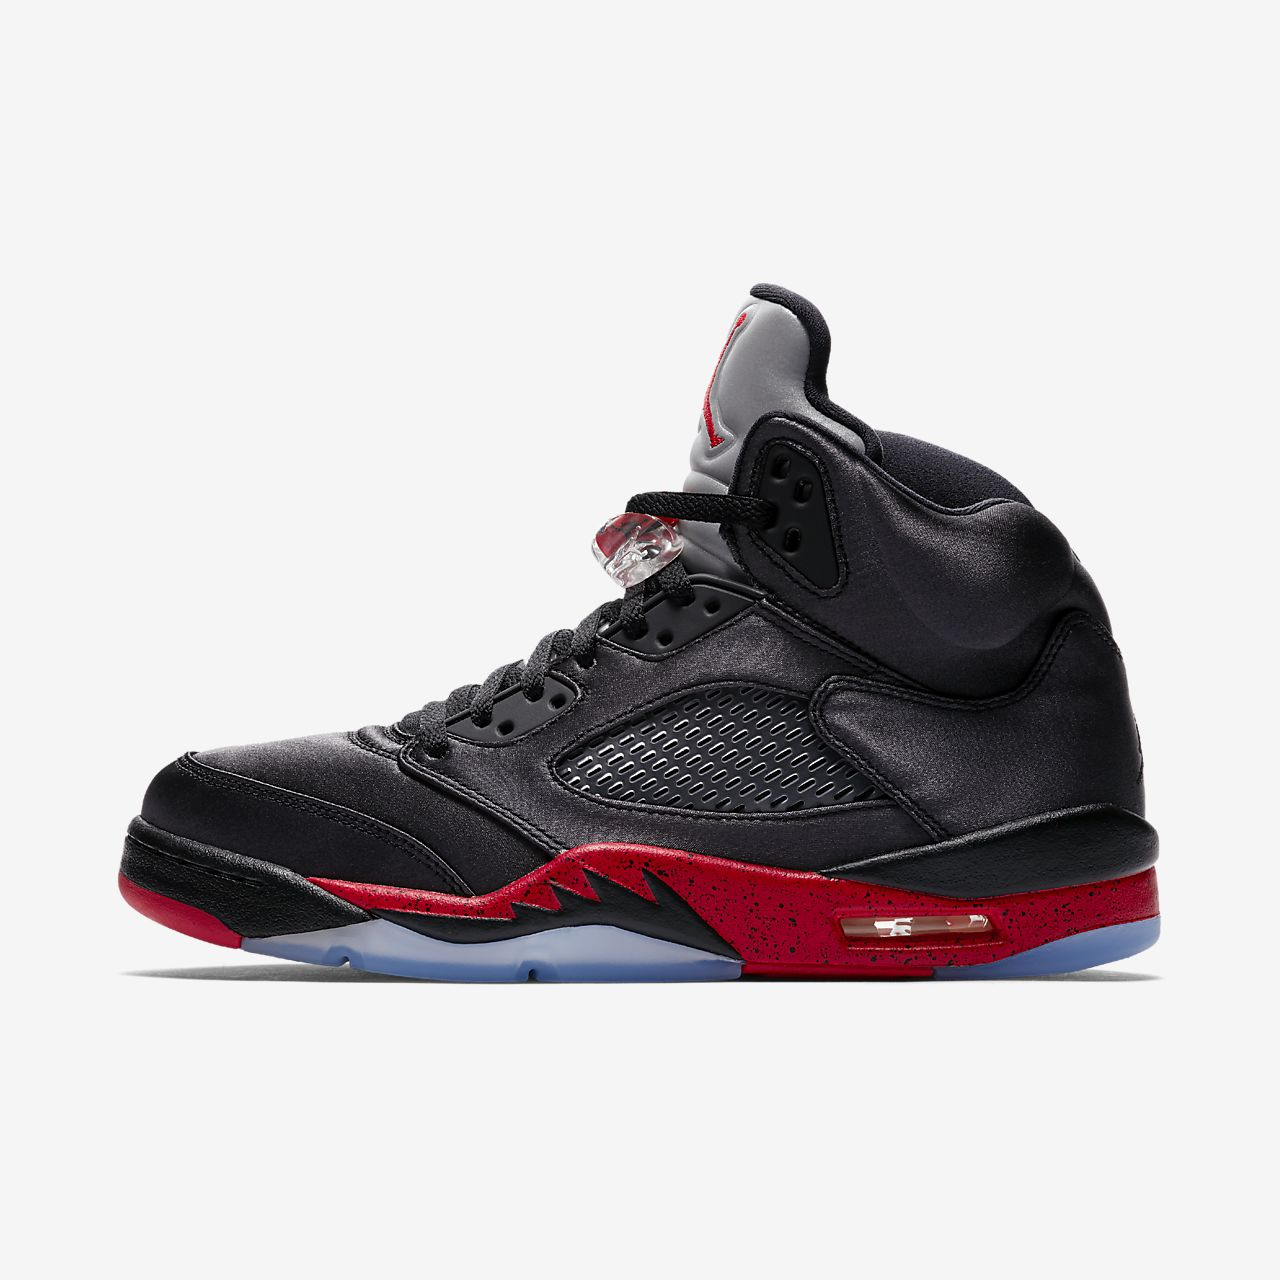 premium selection 4f0c6 1eb40 Air Jordan 5 Retro